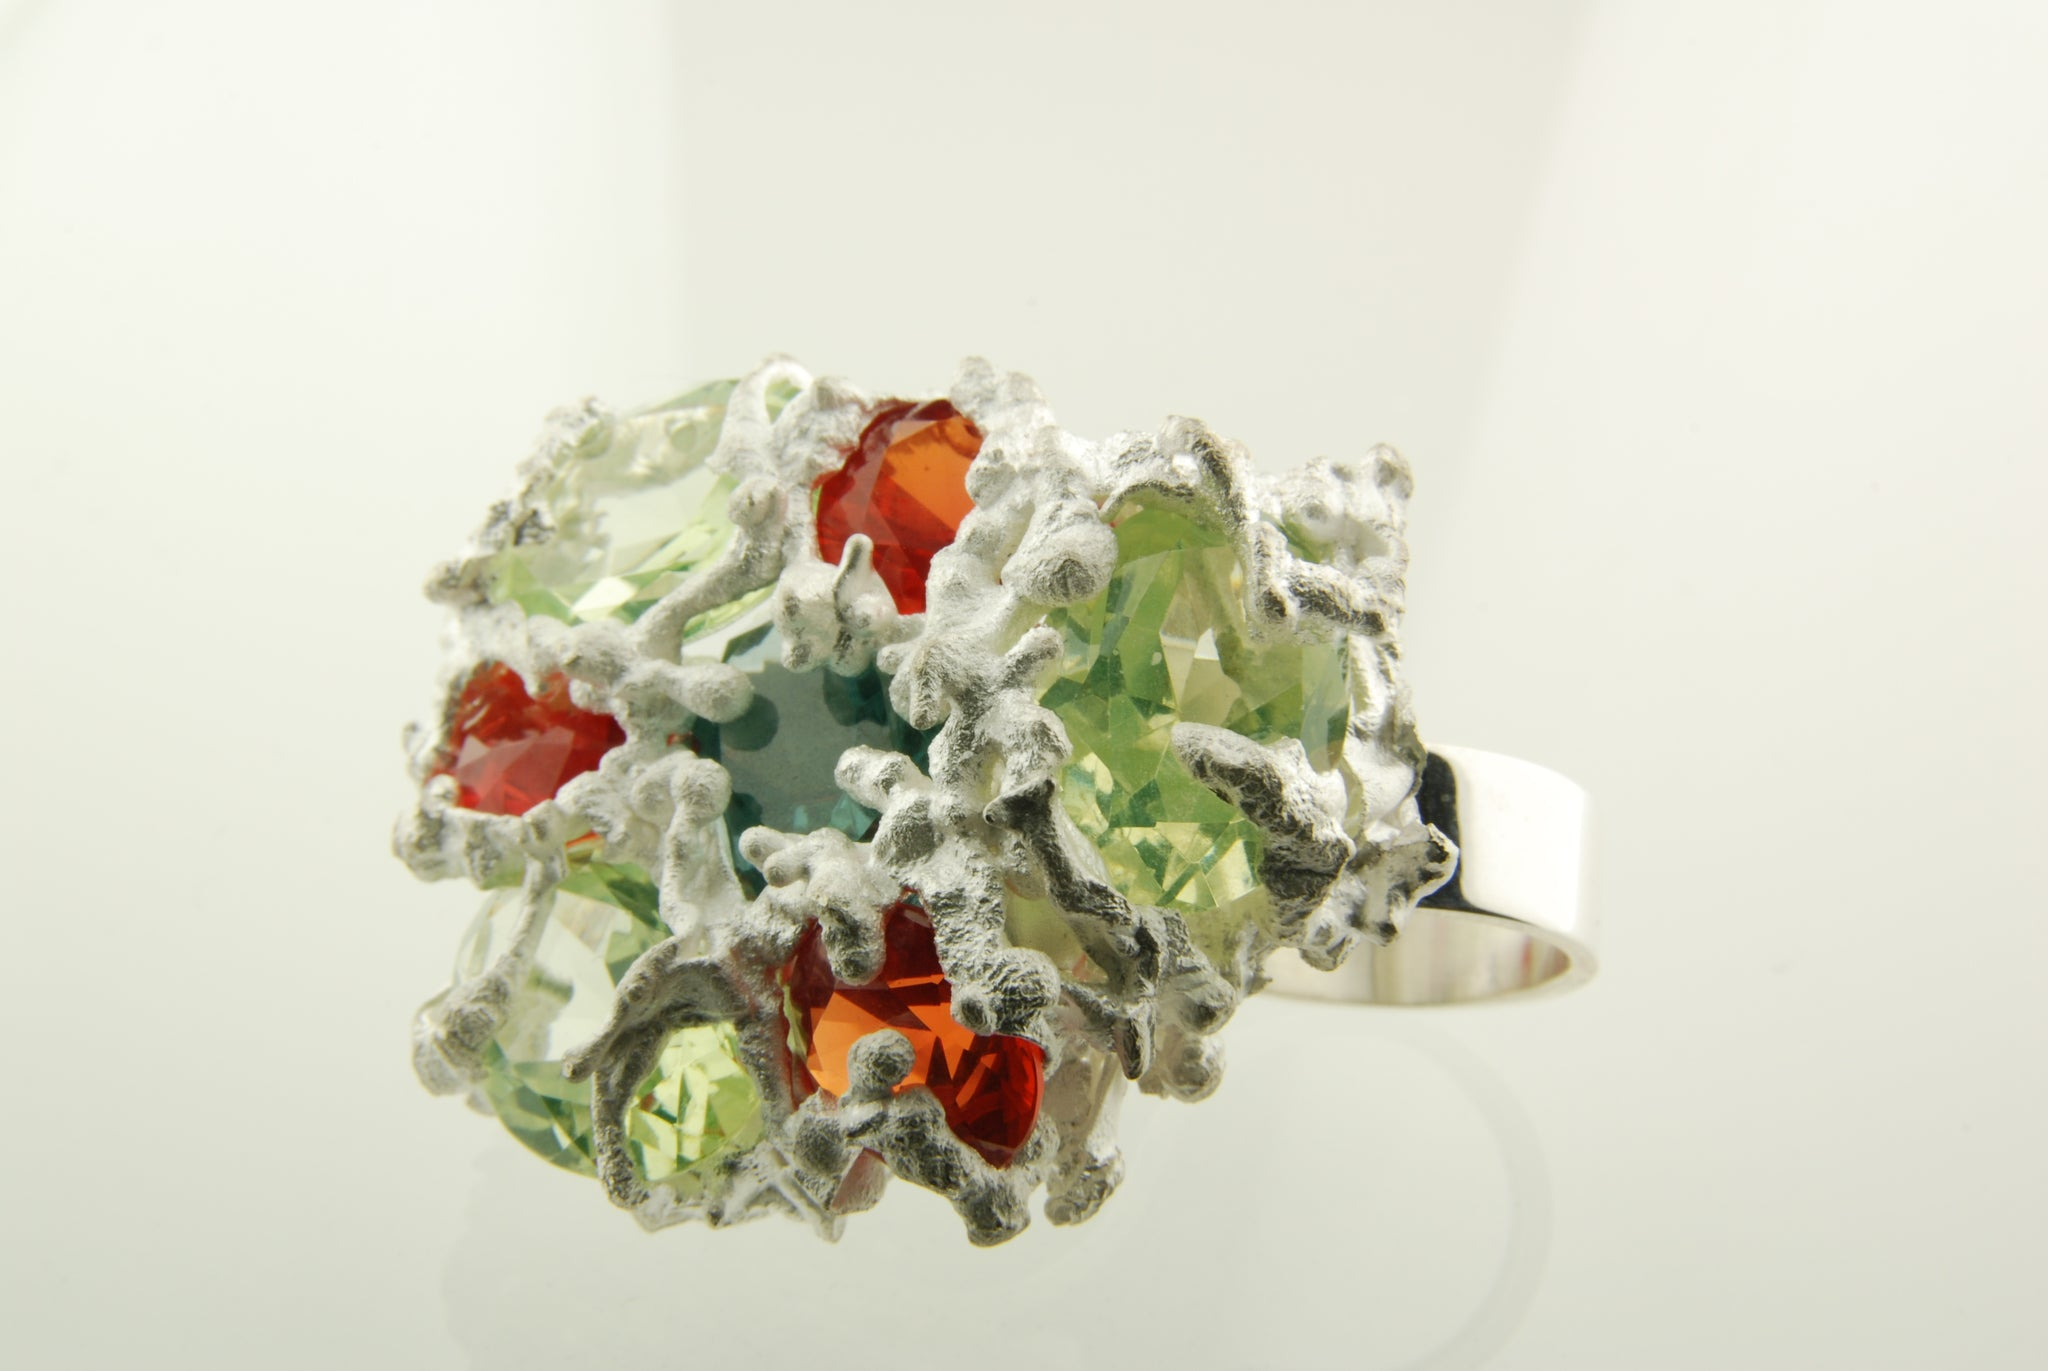 Handmade silver ring set with peridot & citrine stones